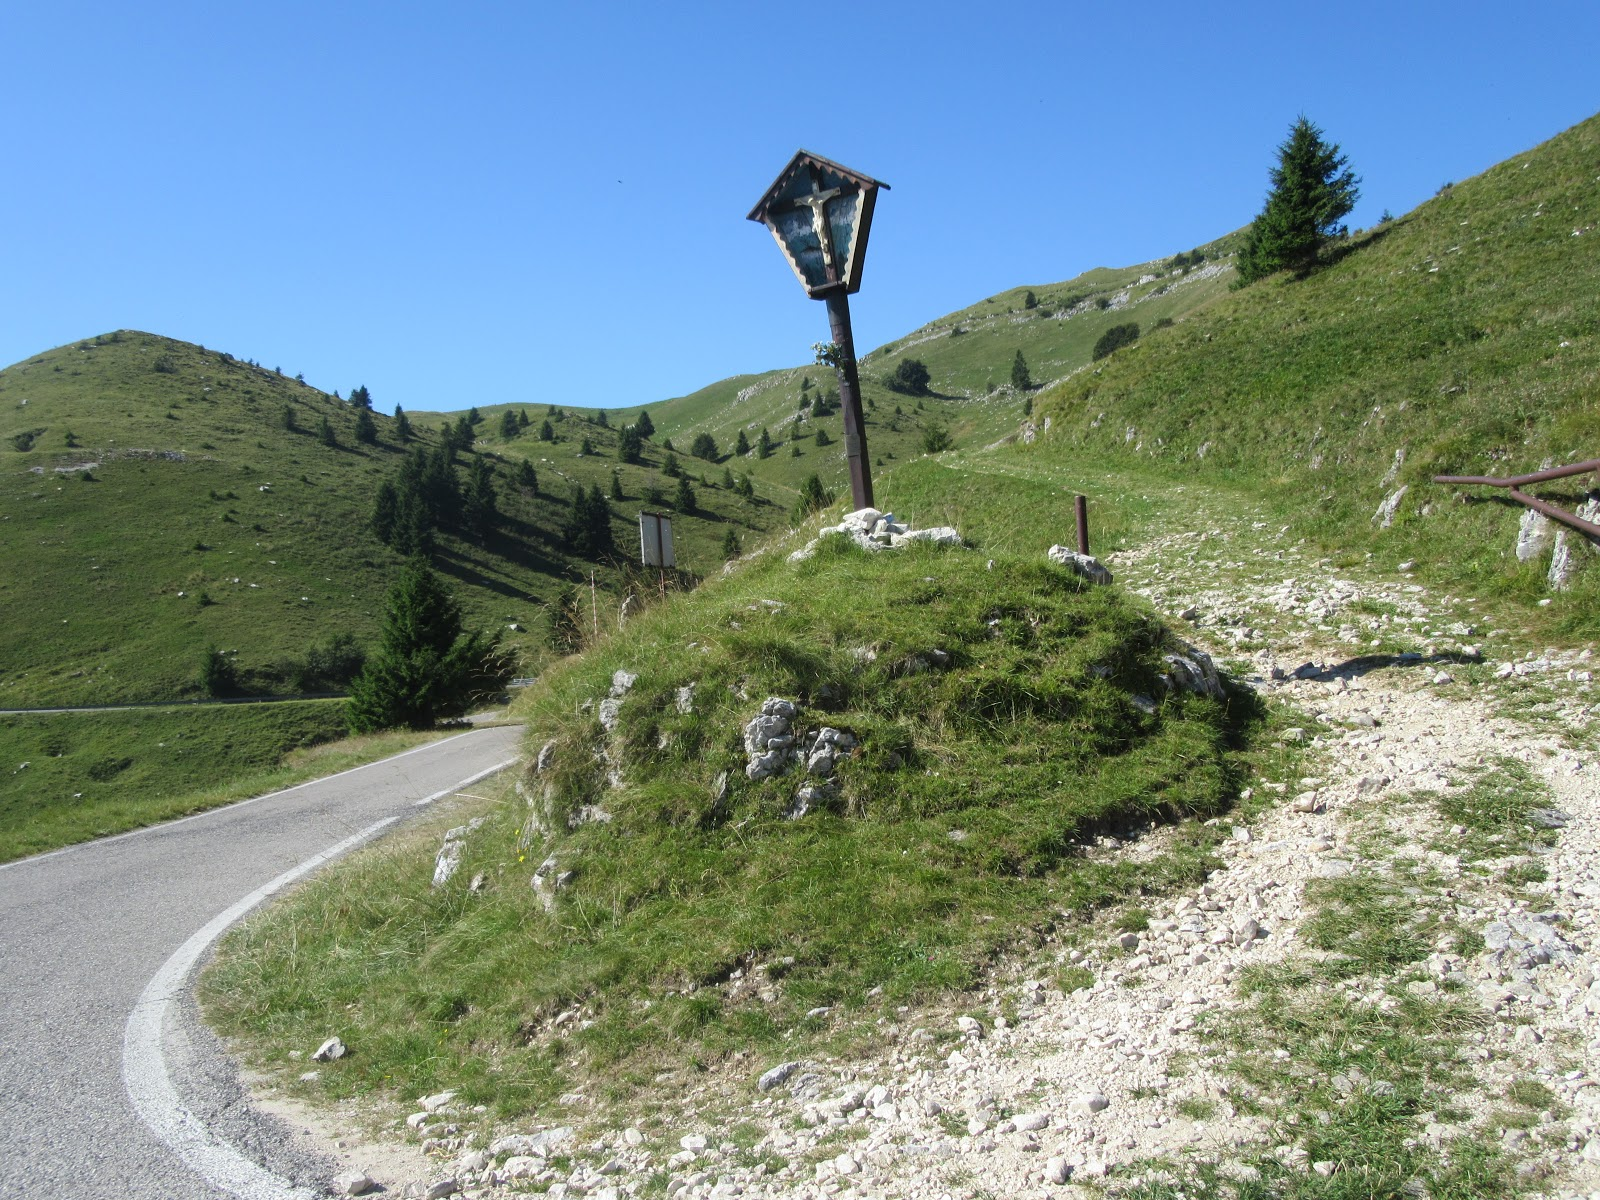 Bike climb of Monte Grappa from Crespano - paved road and gravel, light post